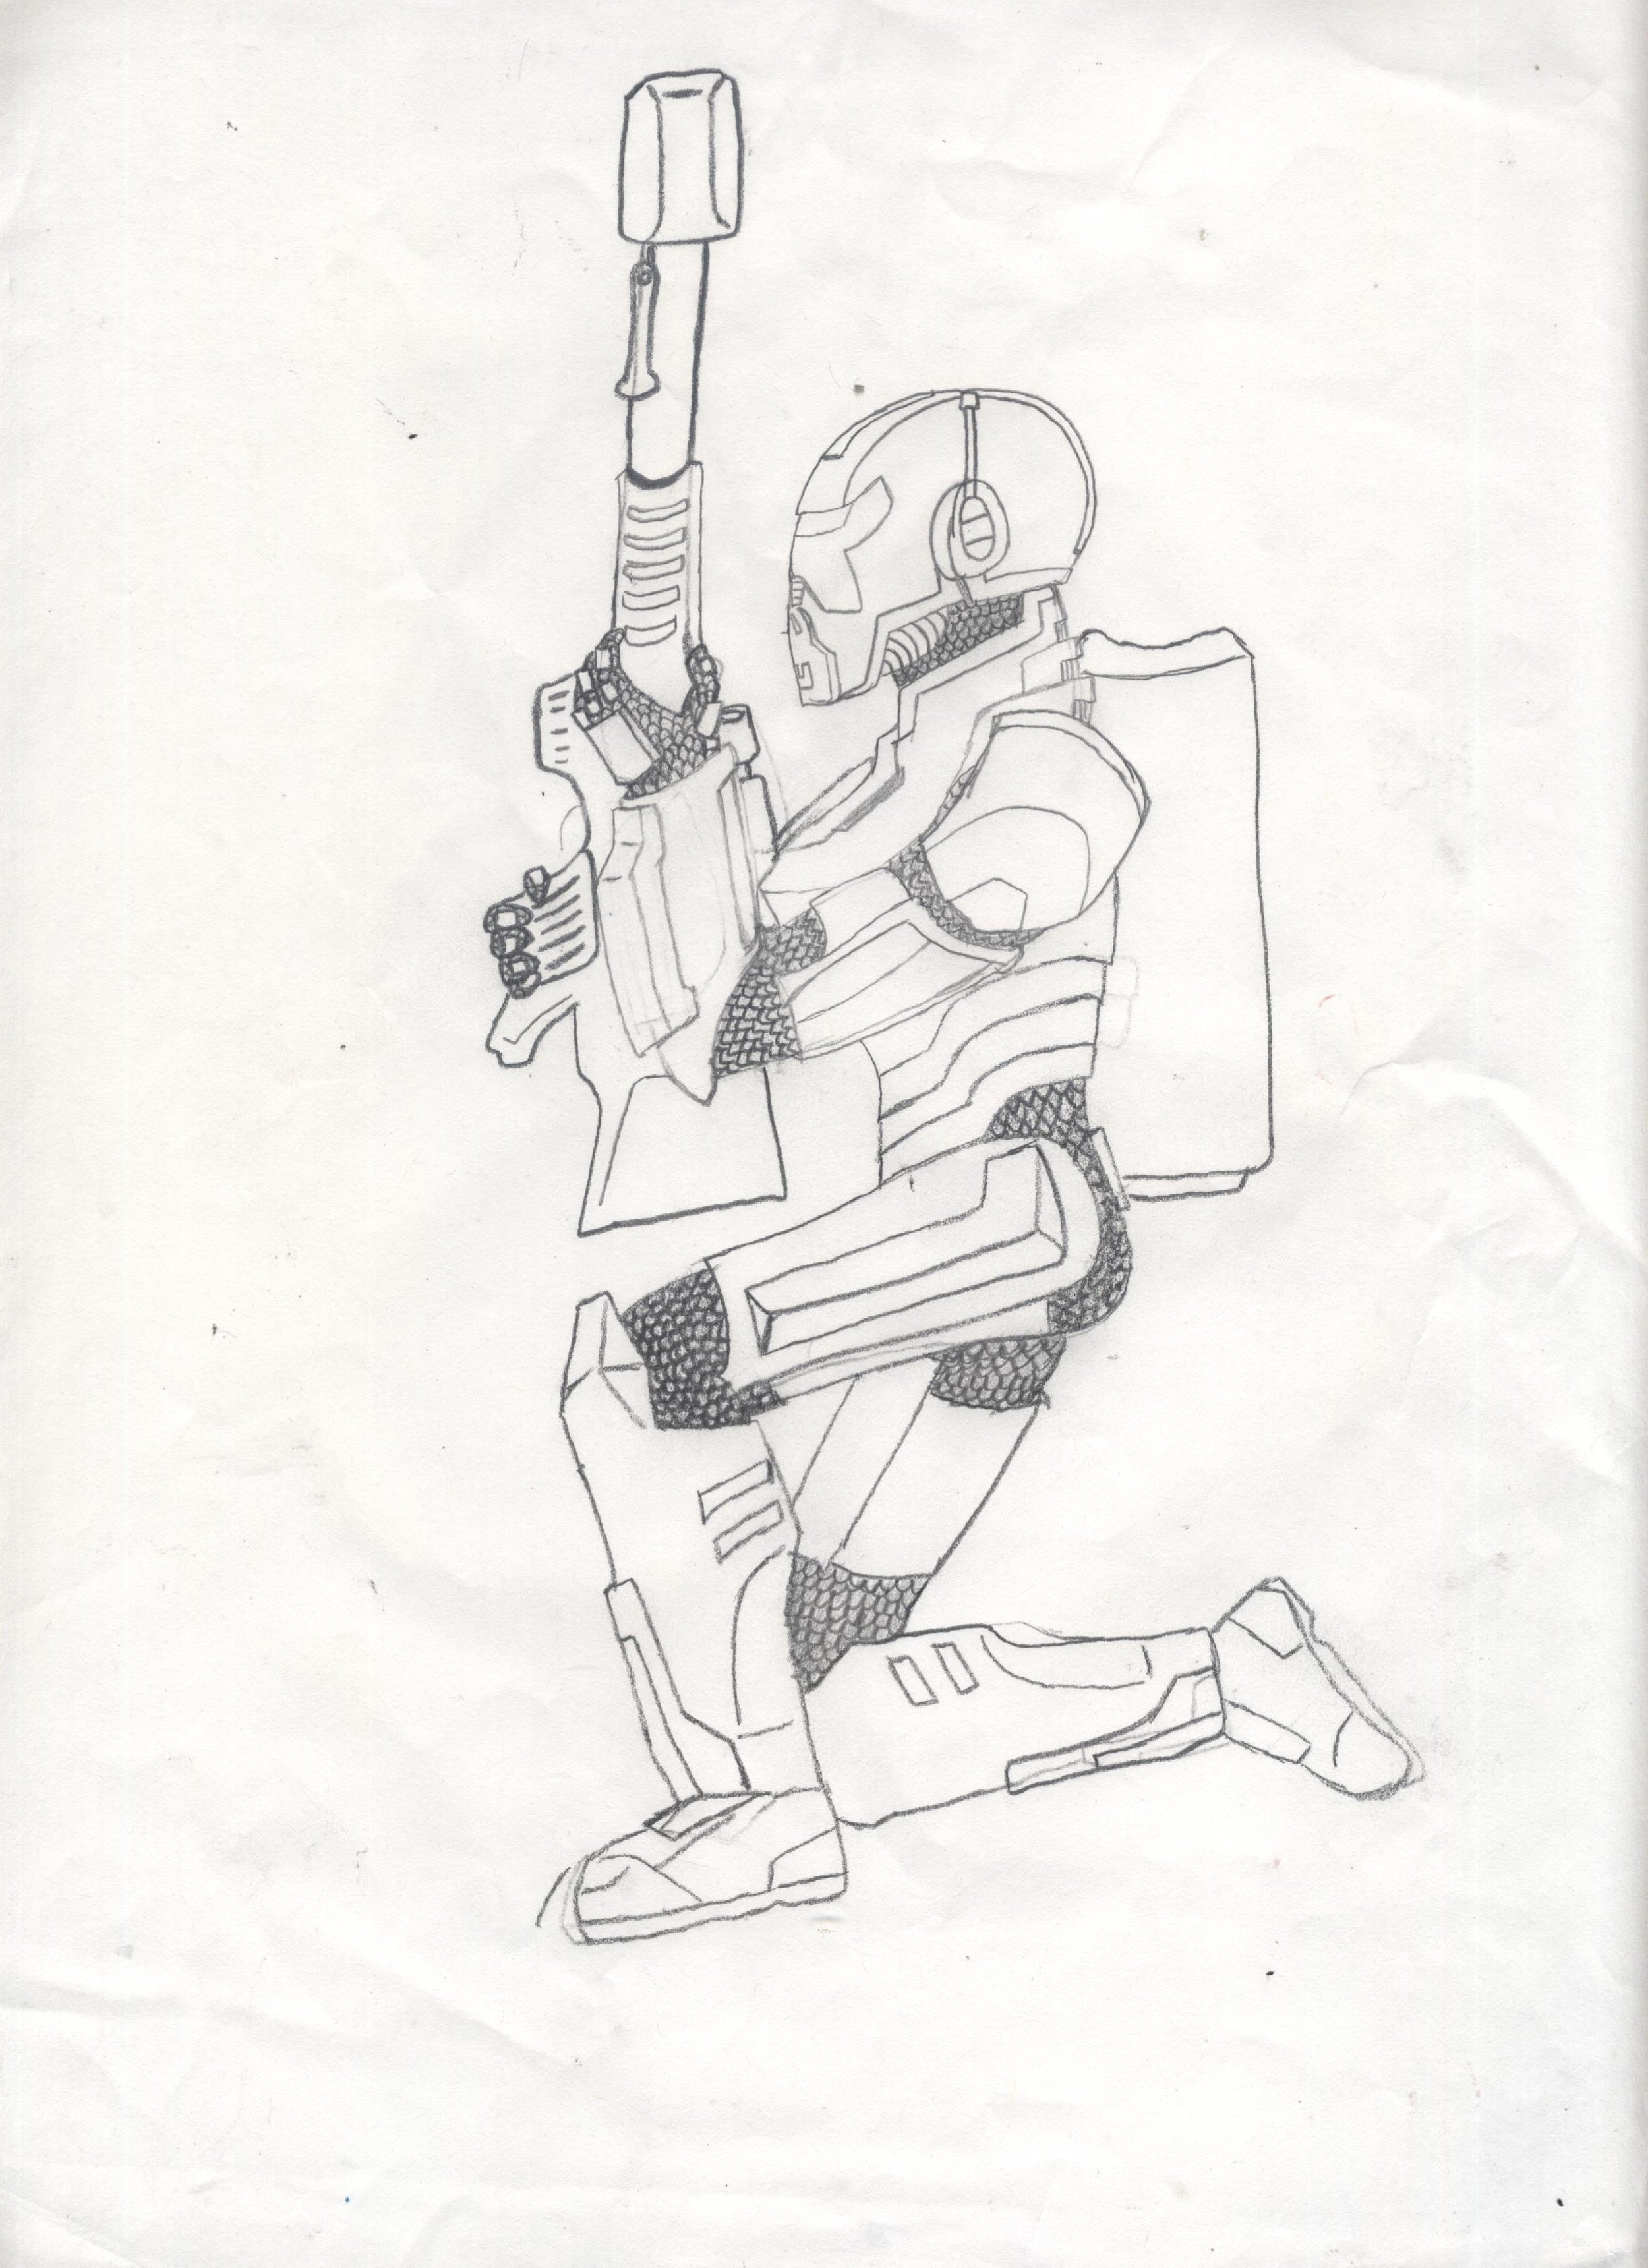 A bounty hunter character used as a reference for a sculpture.